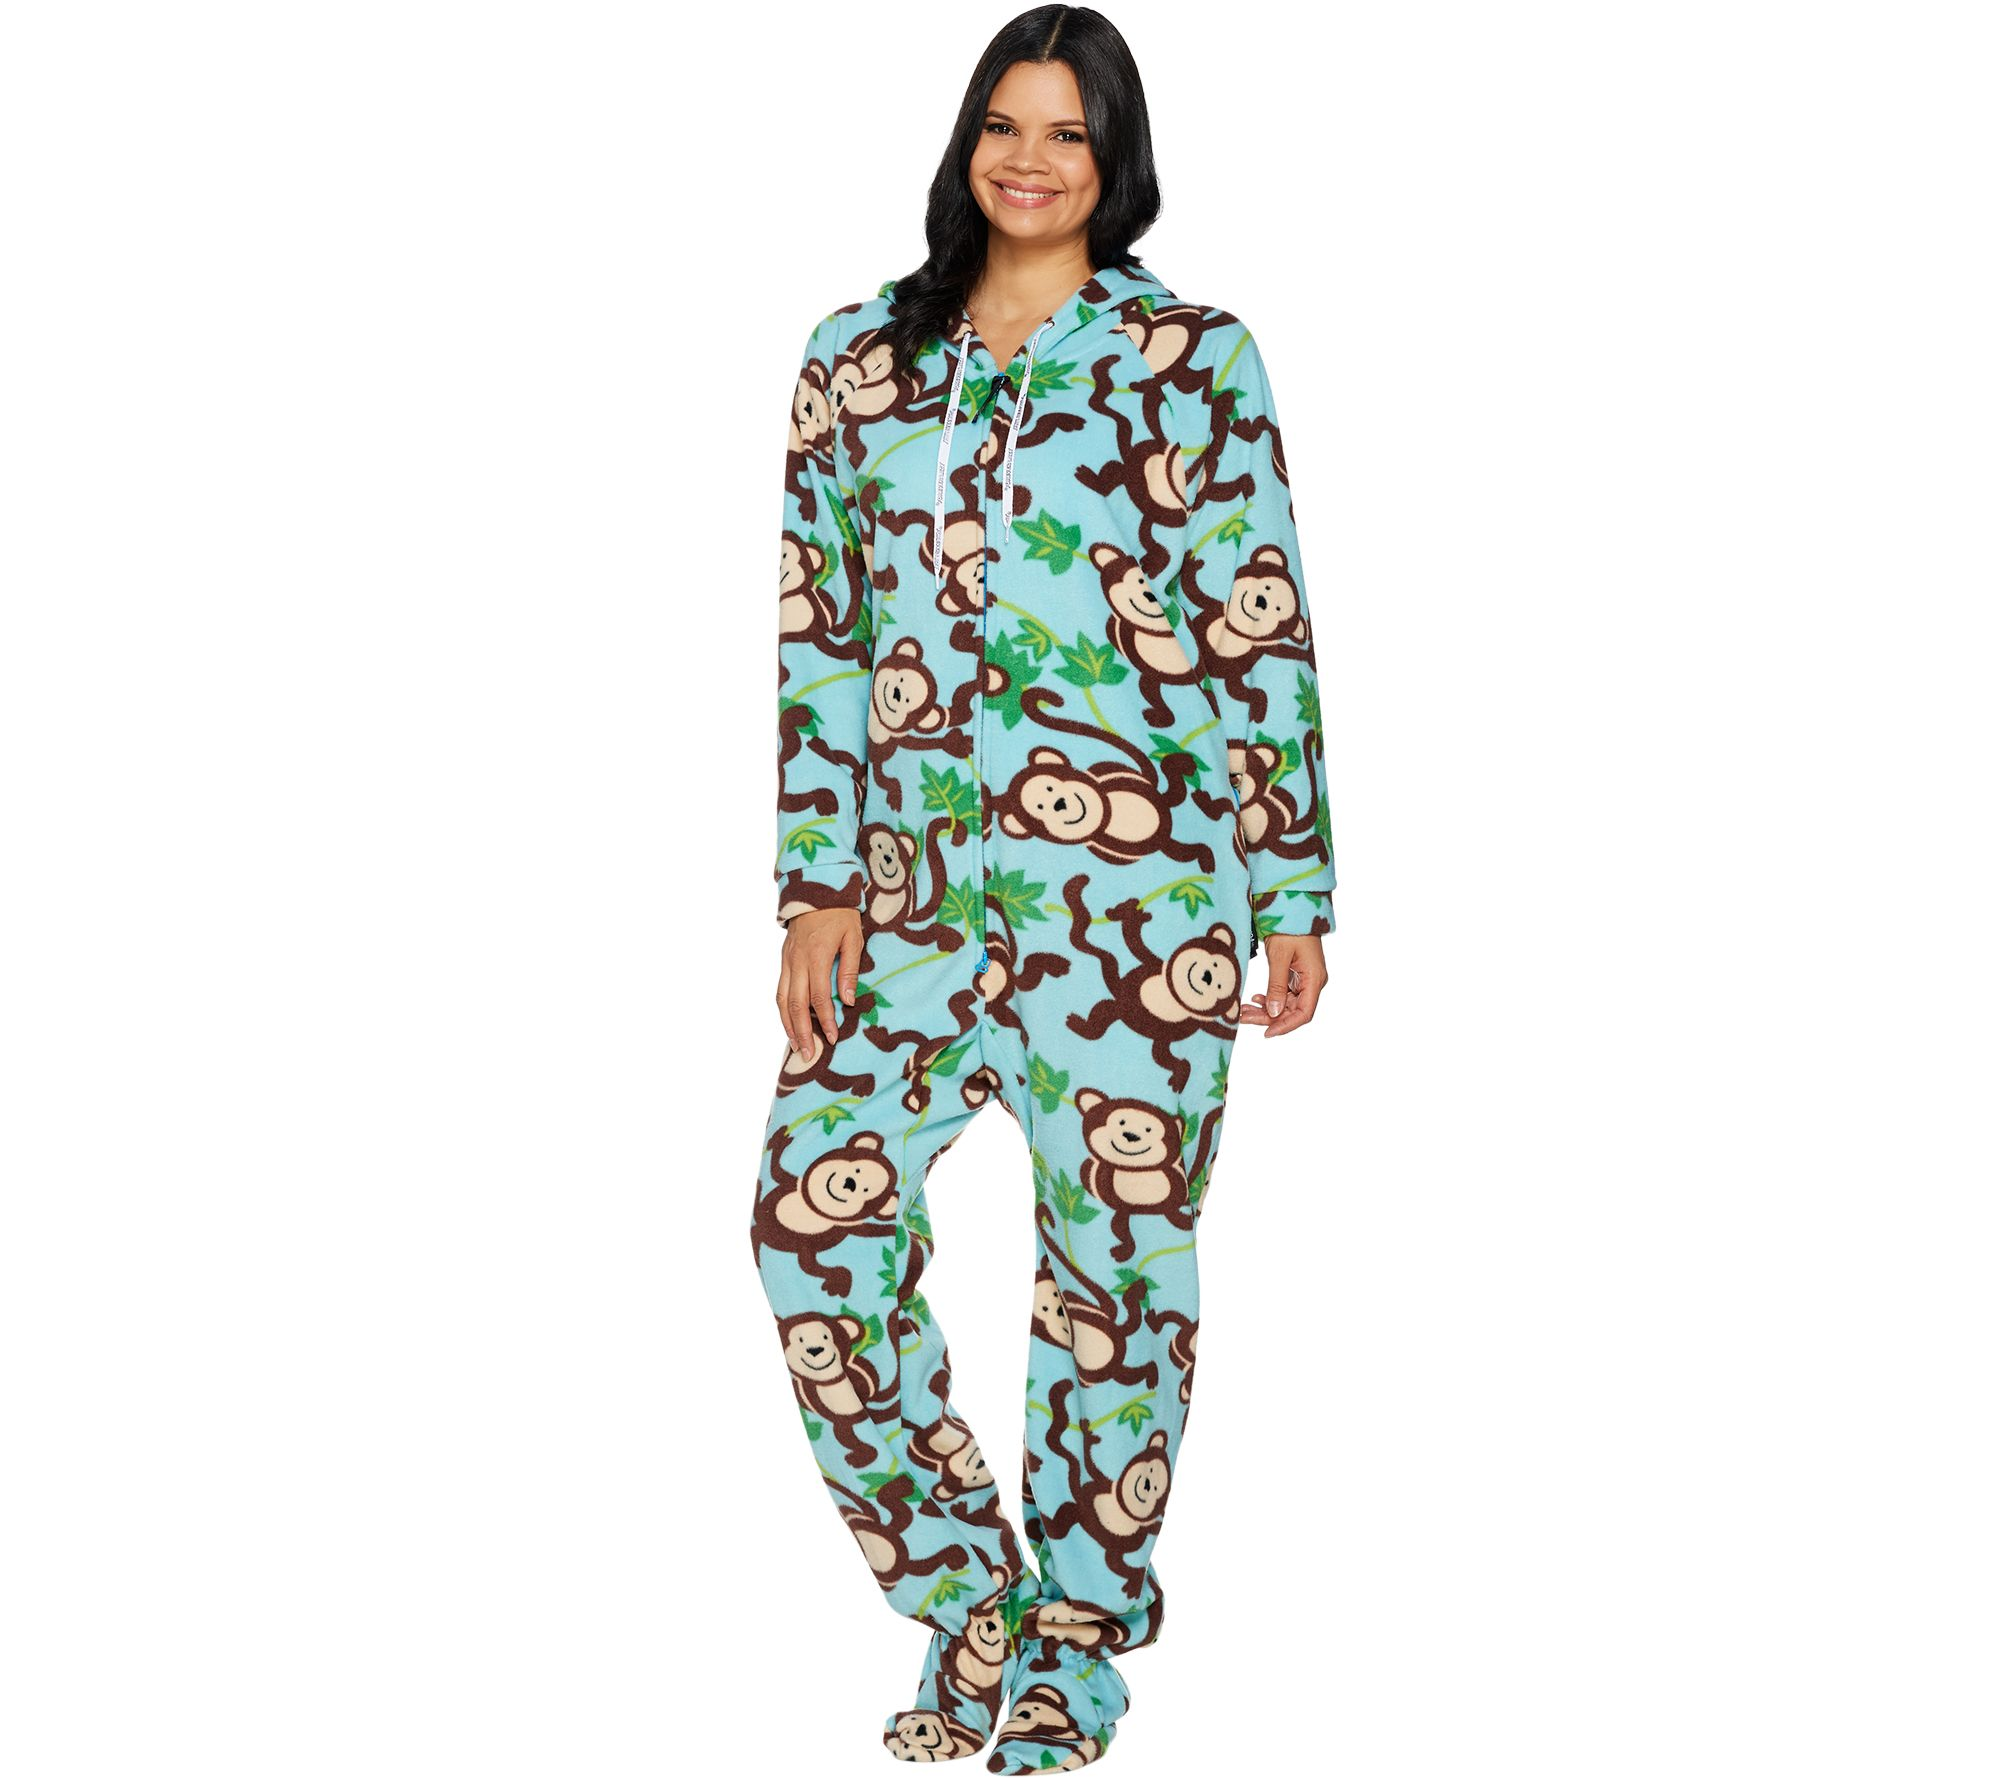 b765acbd0dc6 Forever Lazy Fleece Footed Adult Onesie with Pockets - Page 1 — QVC.com